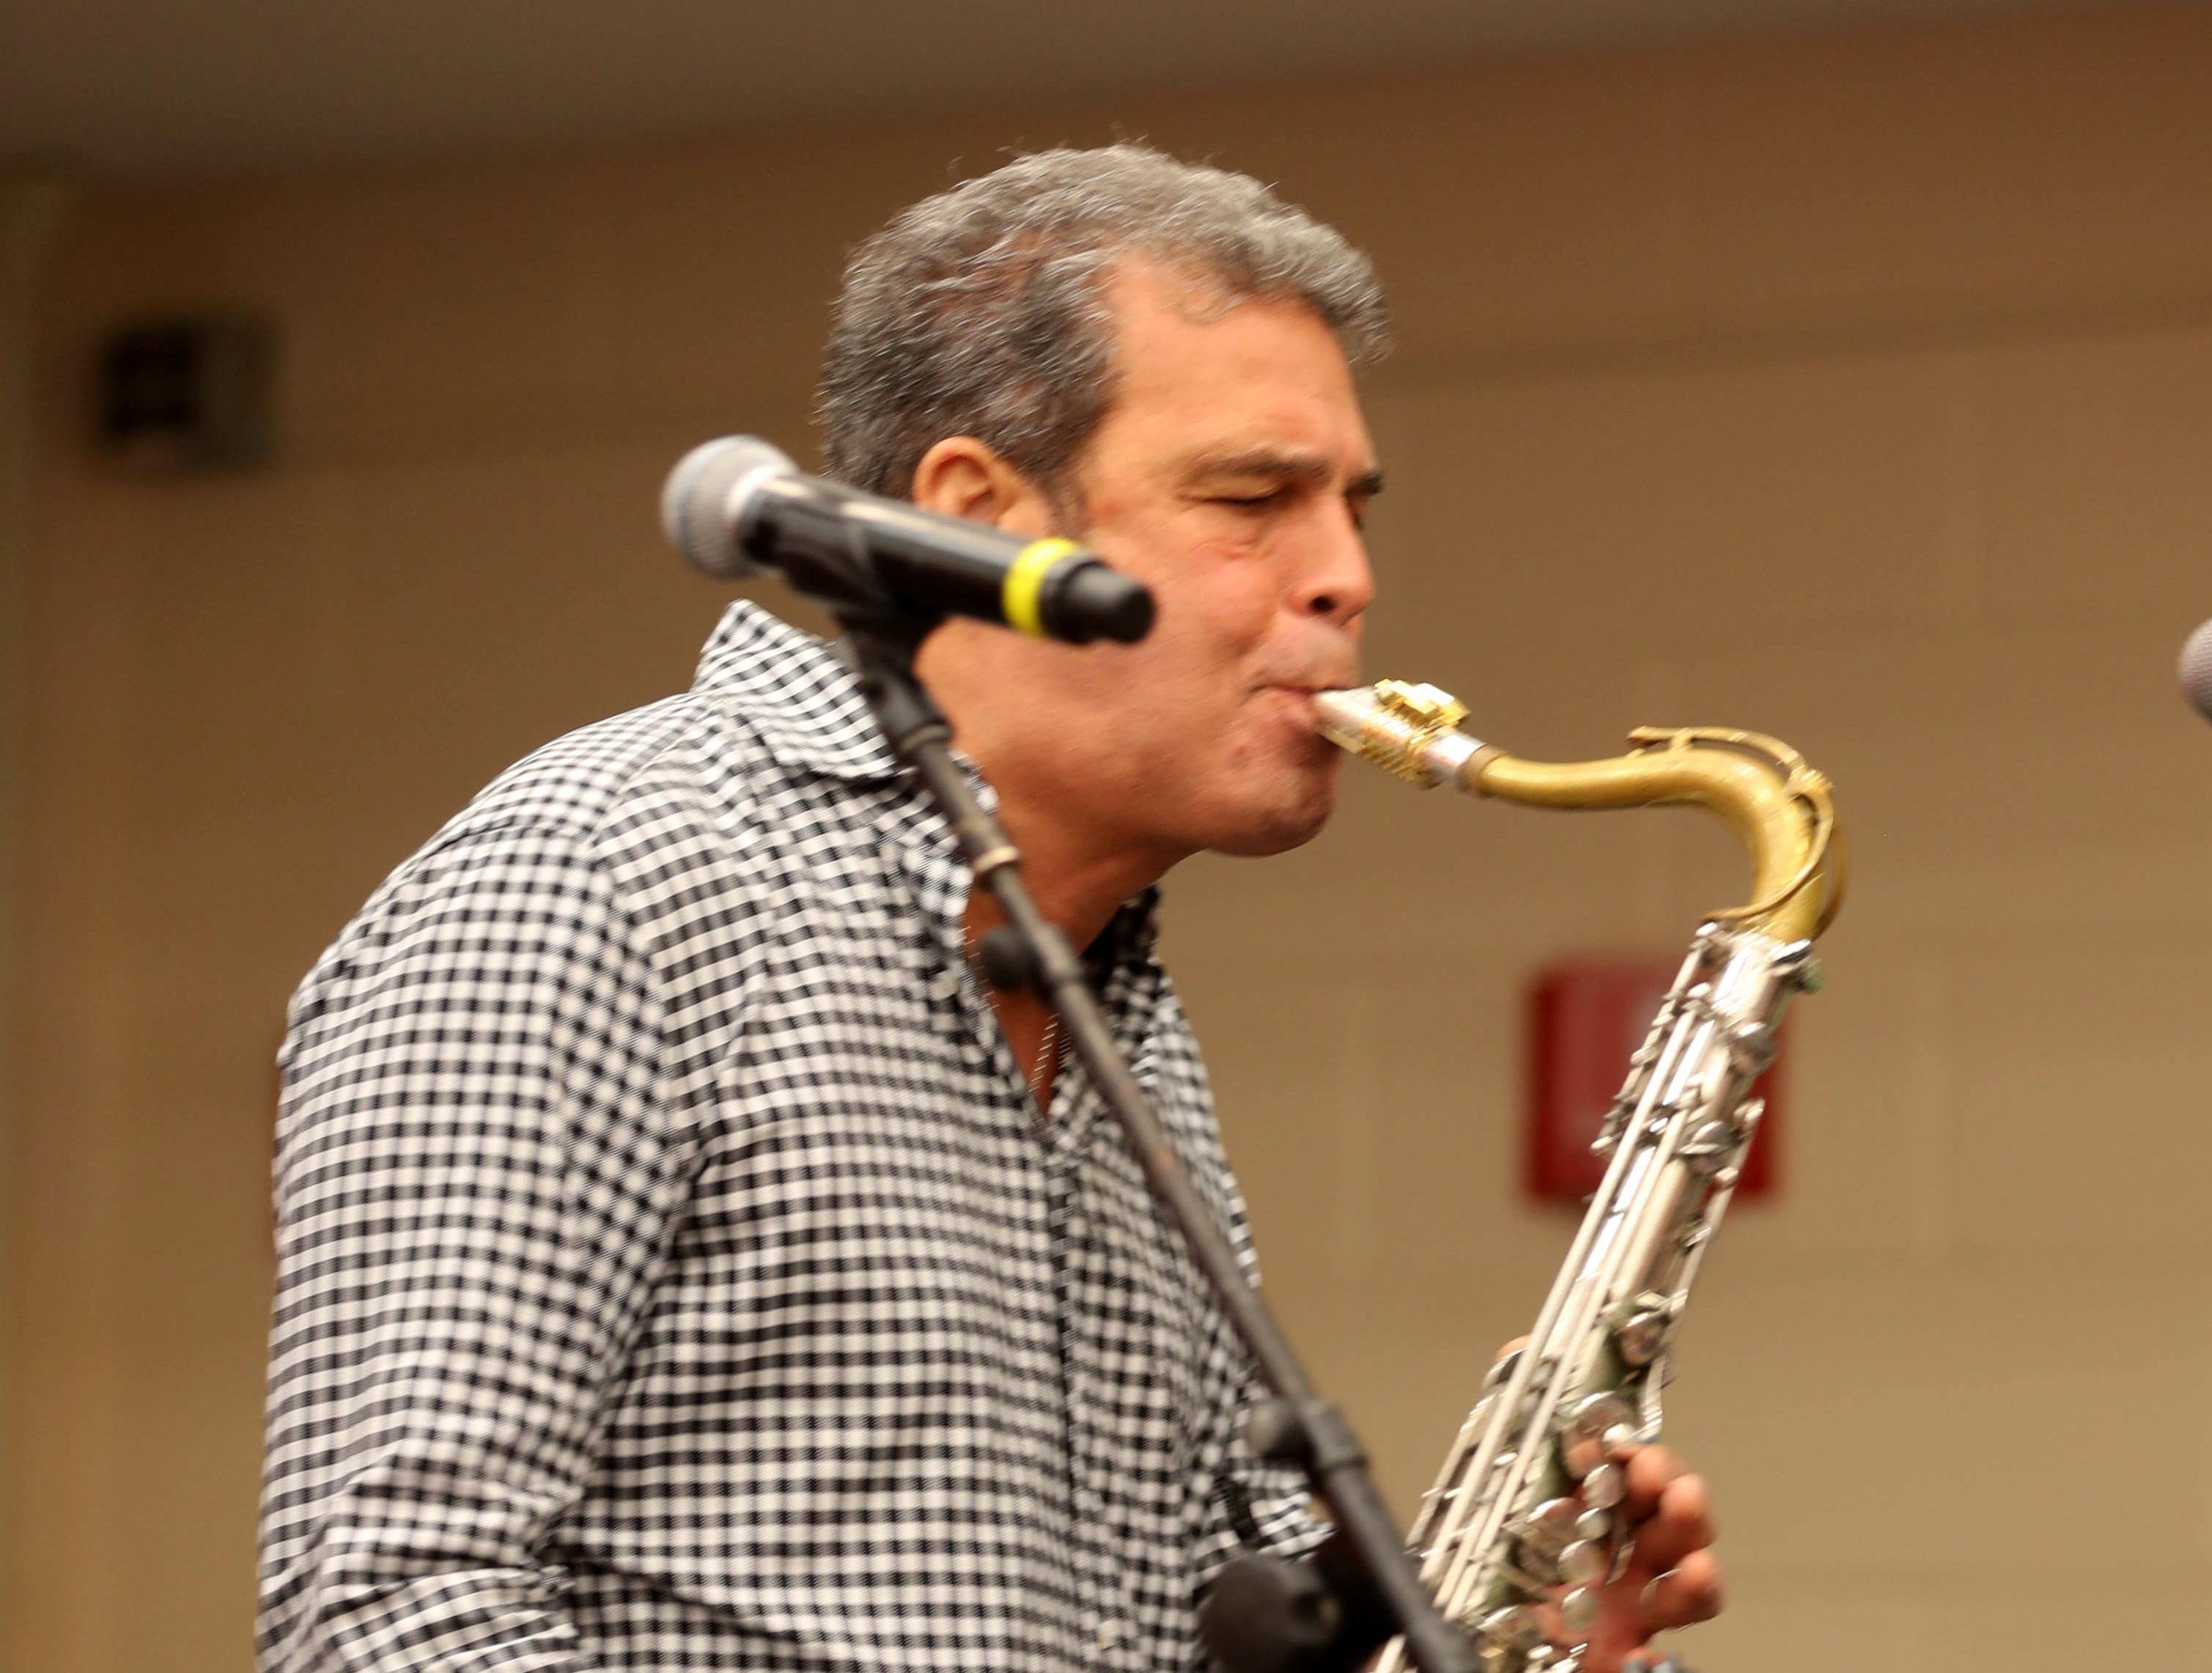 Mark Rivera, Billy Joel's longtime saxophonist, performs during the annual holiday show at Blythedale Children's Hospital in Valhalla Dec. 14, 2018. Scott Shannon, morning disc jockey with WCBS-FM hosts the show every year. This year's show included performances by Rivera, Rob Thomas of Matchbox Twenty, and Grammy nominated singer and songwriter Gavin DeGraw. The event included a live auction that featured autographed guitars by Jon Bon Jovi and Rob Thomas and tickets to a Billy Joel concert at Madison Square Garden.